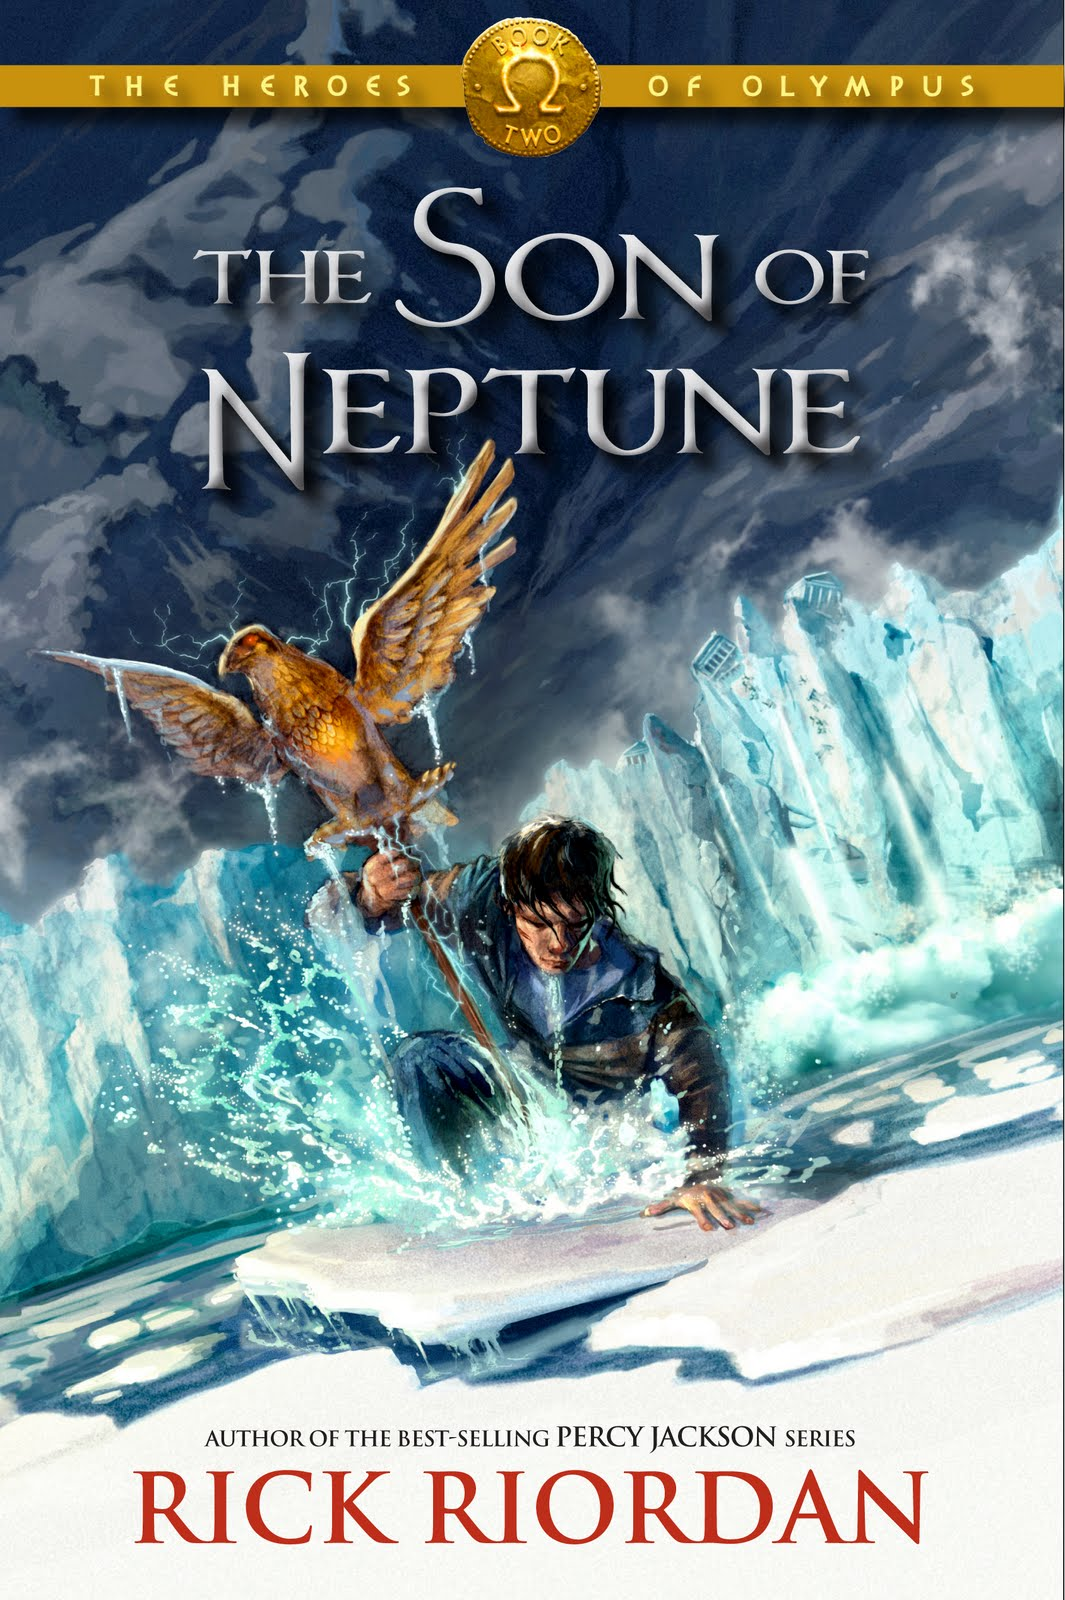 book image from http://camphalfblood.wikia.com/wiki/The_Son_of_Neptune